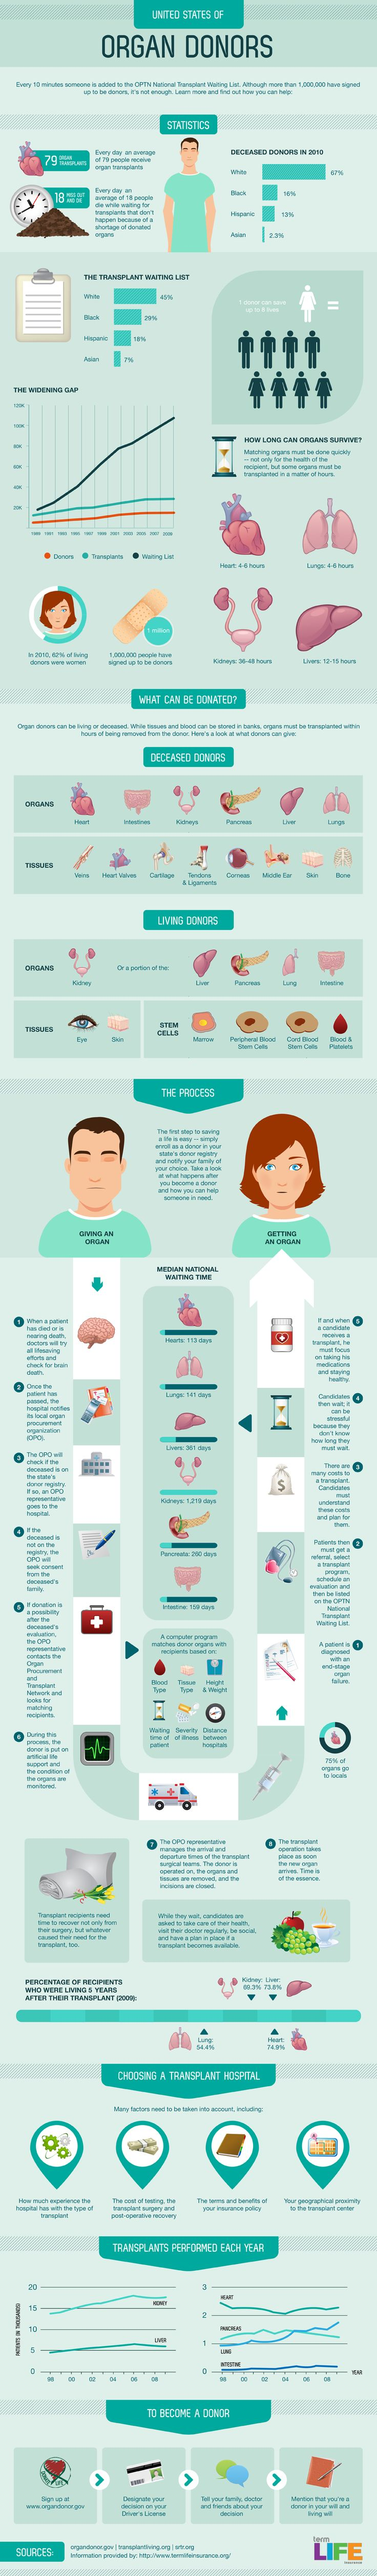 The United States of organ donors. A great #Infograph about #OrganDonation and any information you would want to know about becoming an organ donor or the #facts.     For more information about organ donation facts: http://www.donatelifevt.org/organ-donation-facts